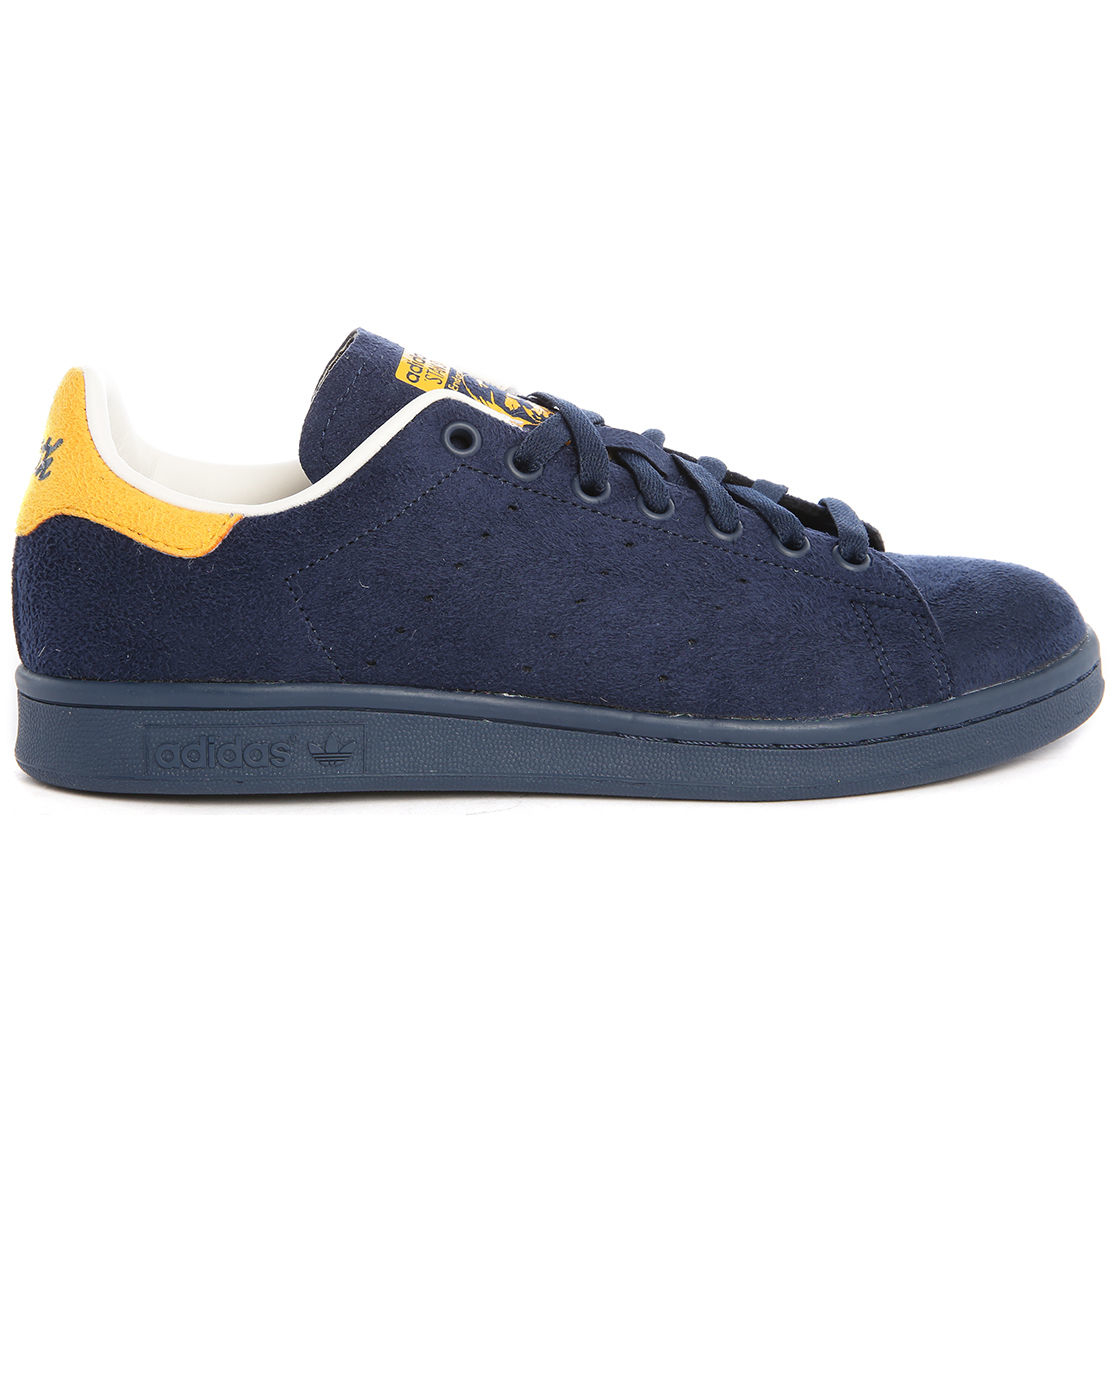 adidas originals stan smith navy suede sneakers in blue. Black Bedroom Furniture Sets. Home Design Ideas